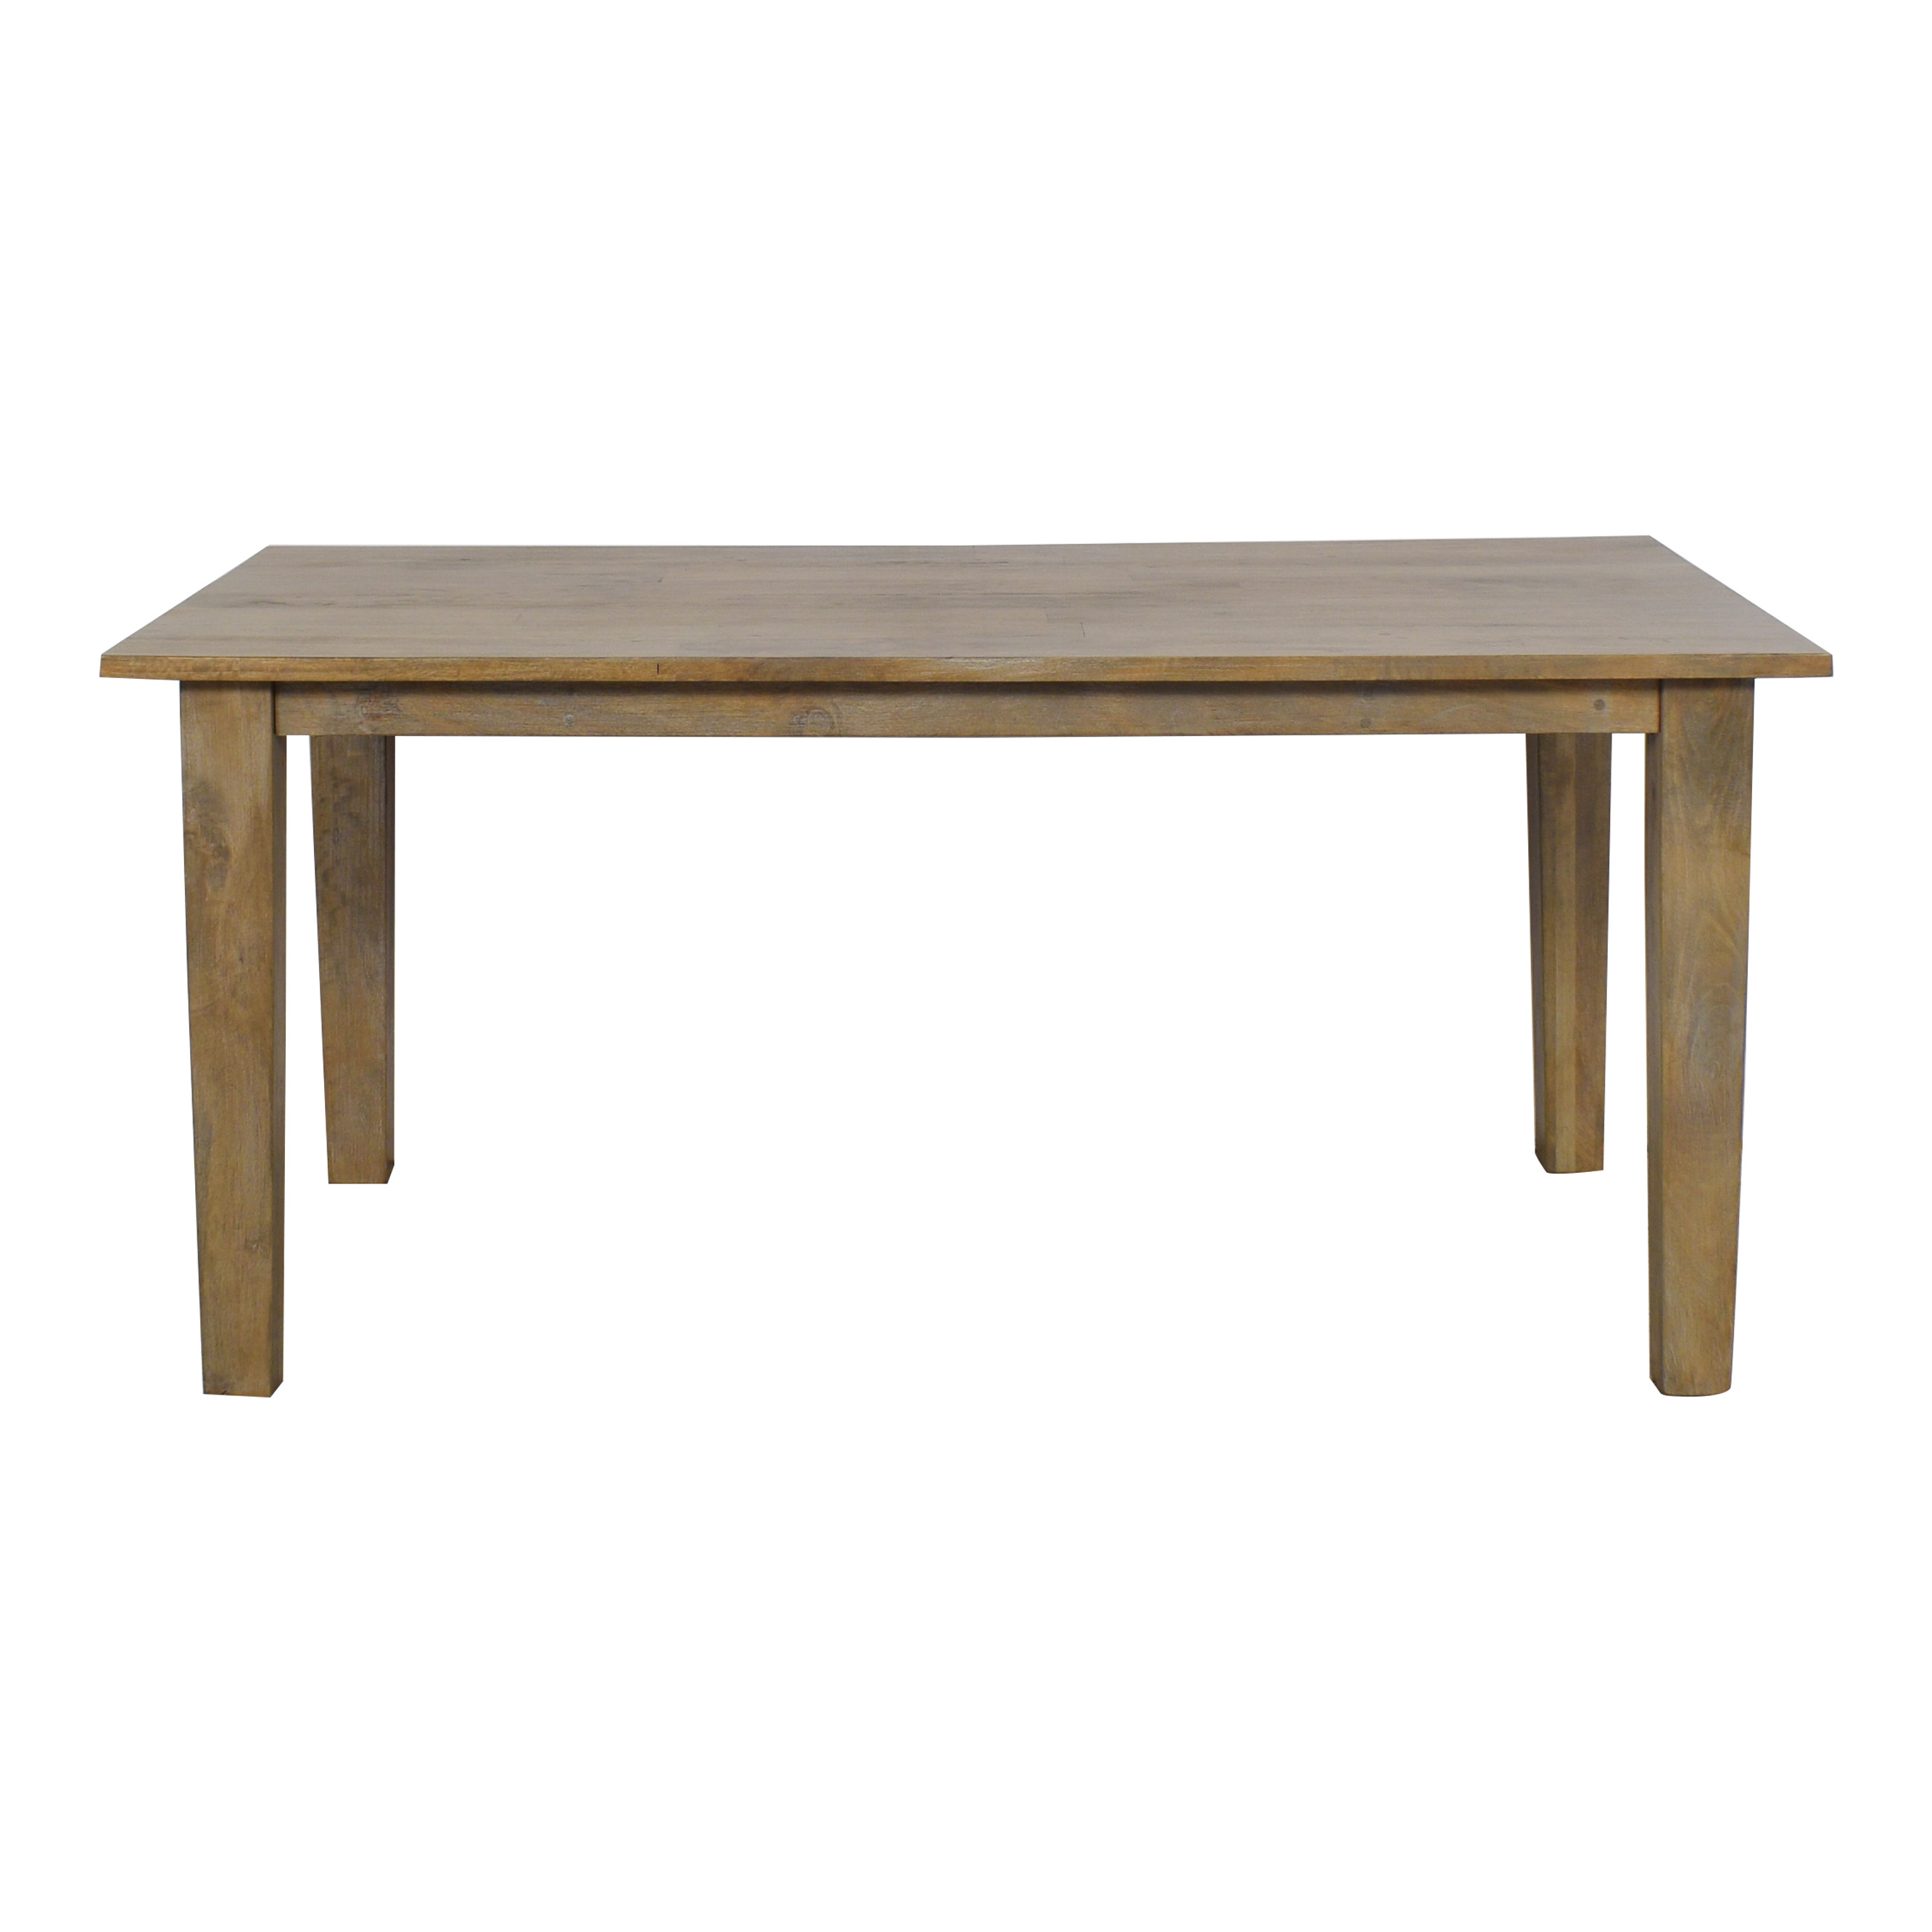 Crate & Barrel Crate & Barrel Basque Grey Wash Dining Table